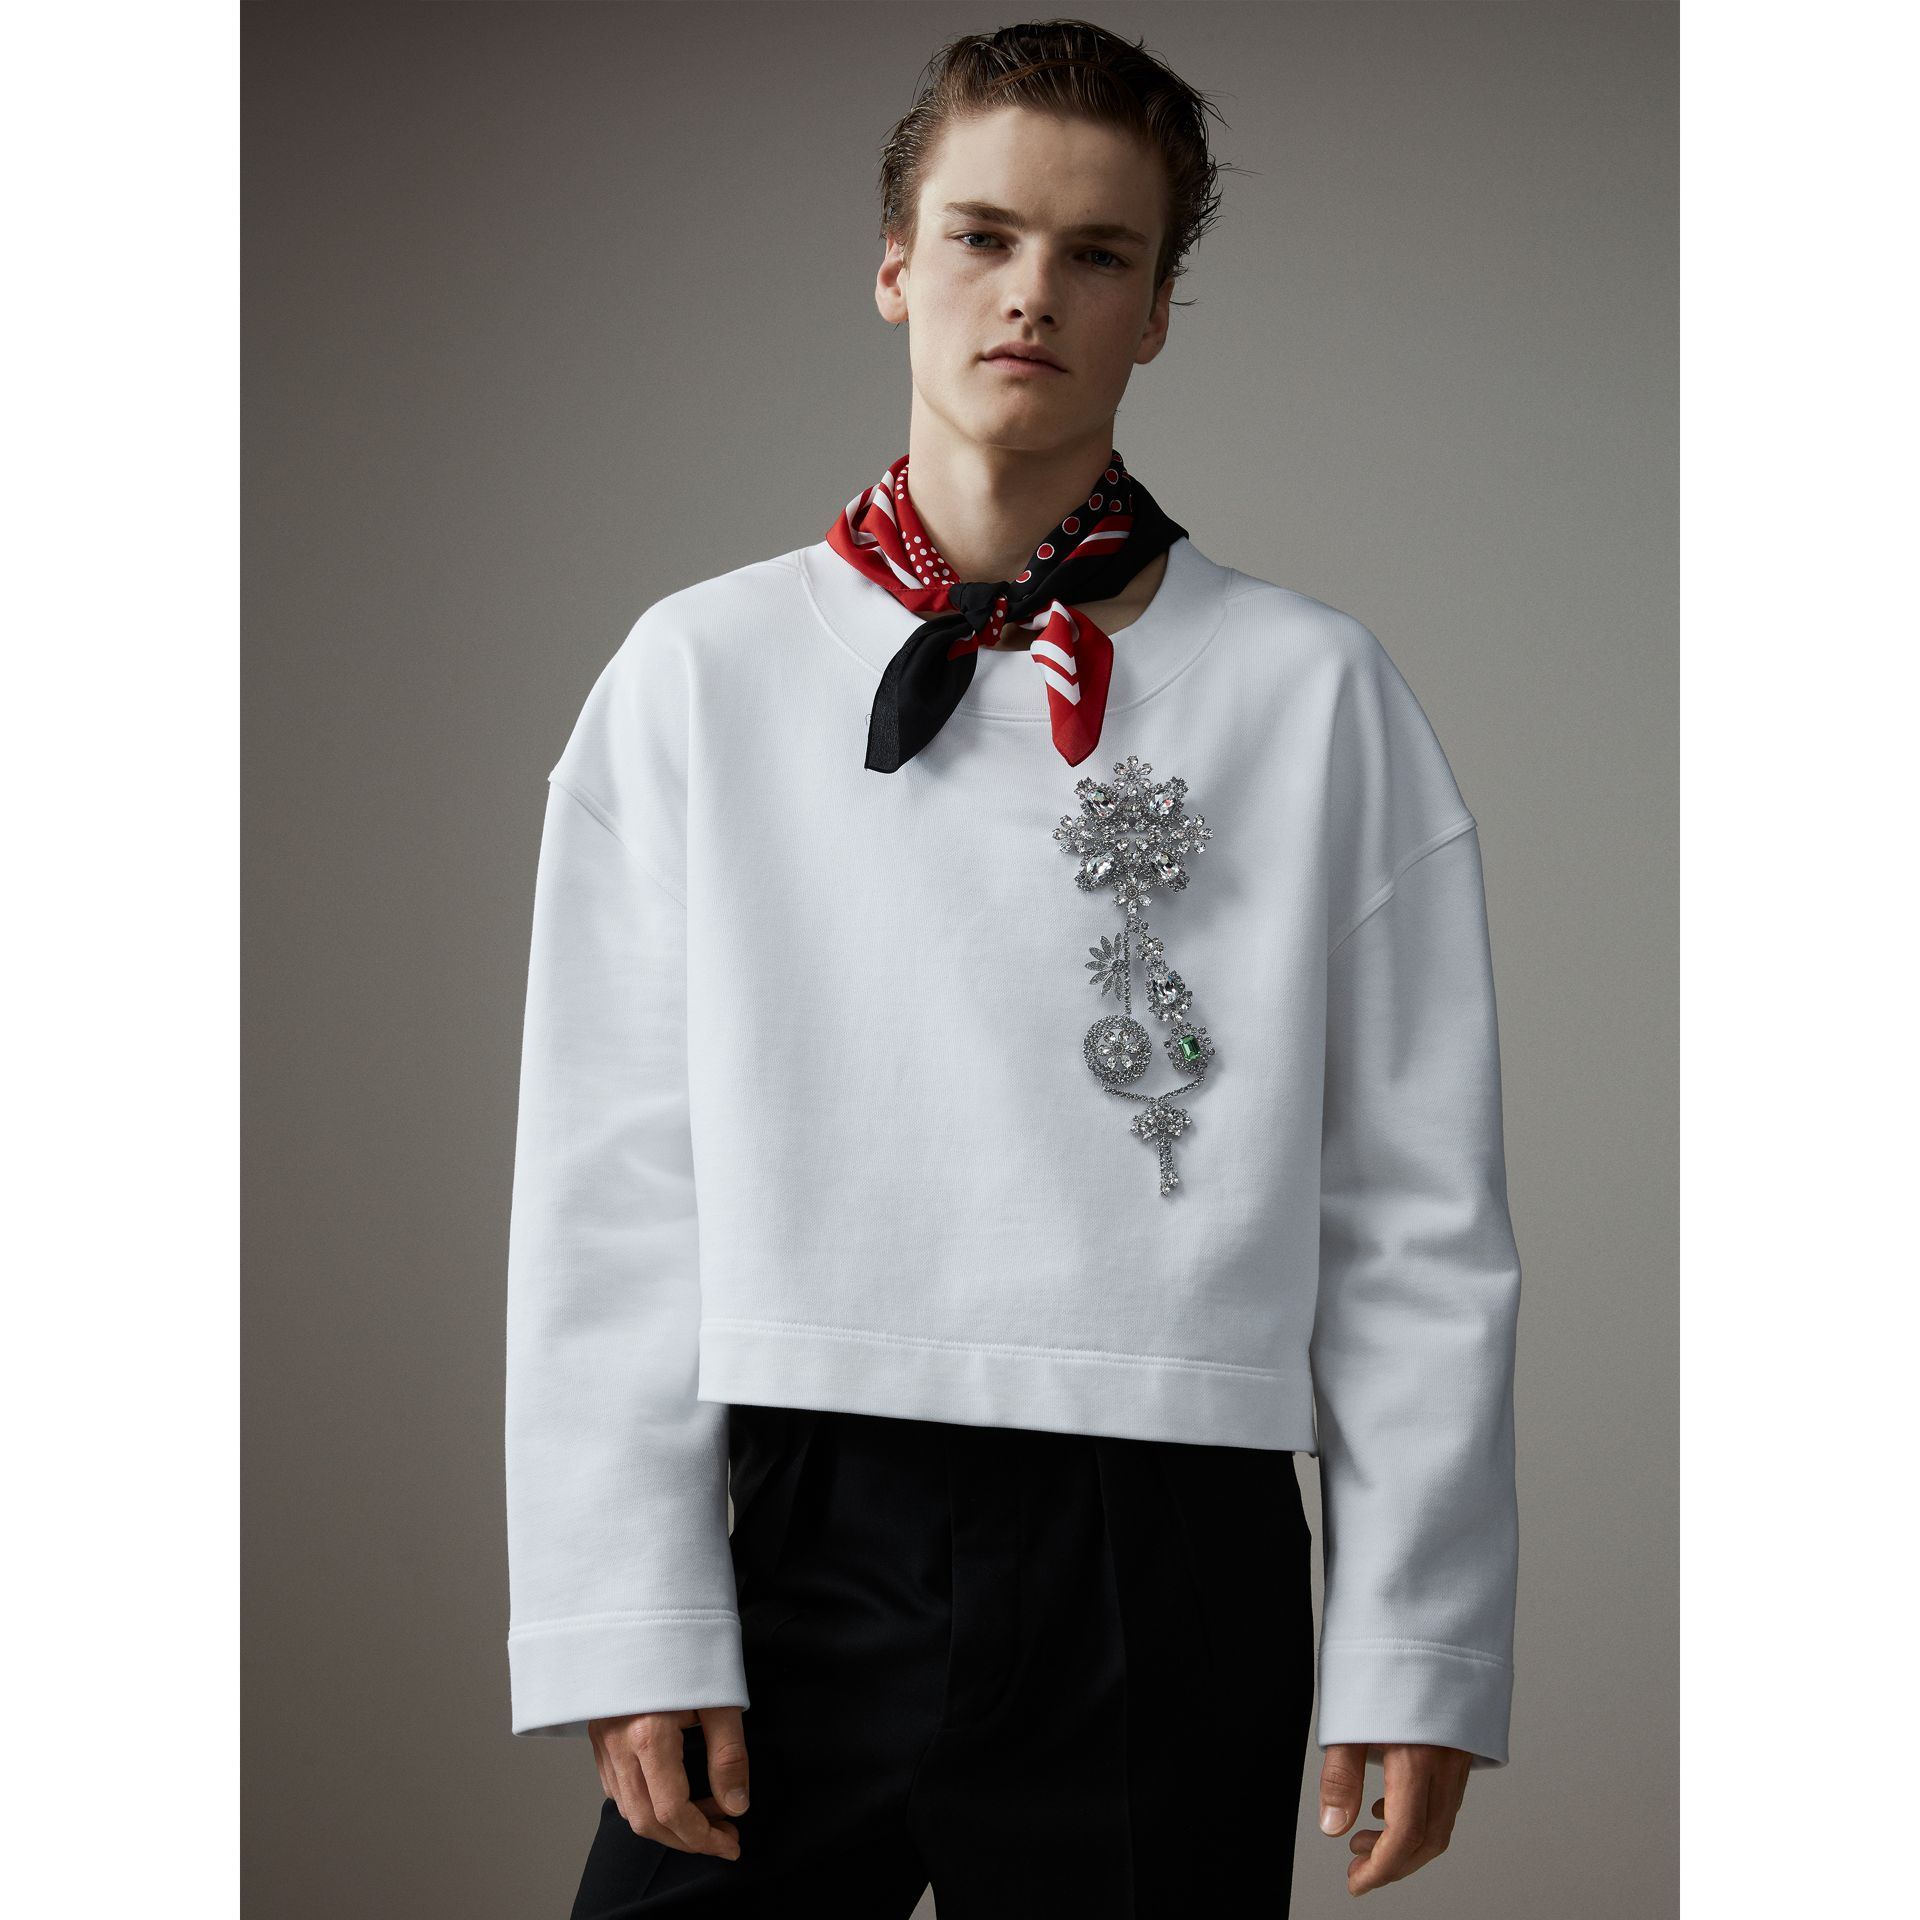 Sweat-shirt court en coton avec broche en cristal (Blanc Optique) - Homme | Burberry - photo de la galerie 1